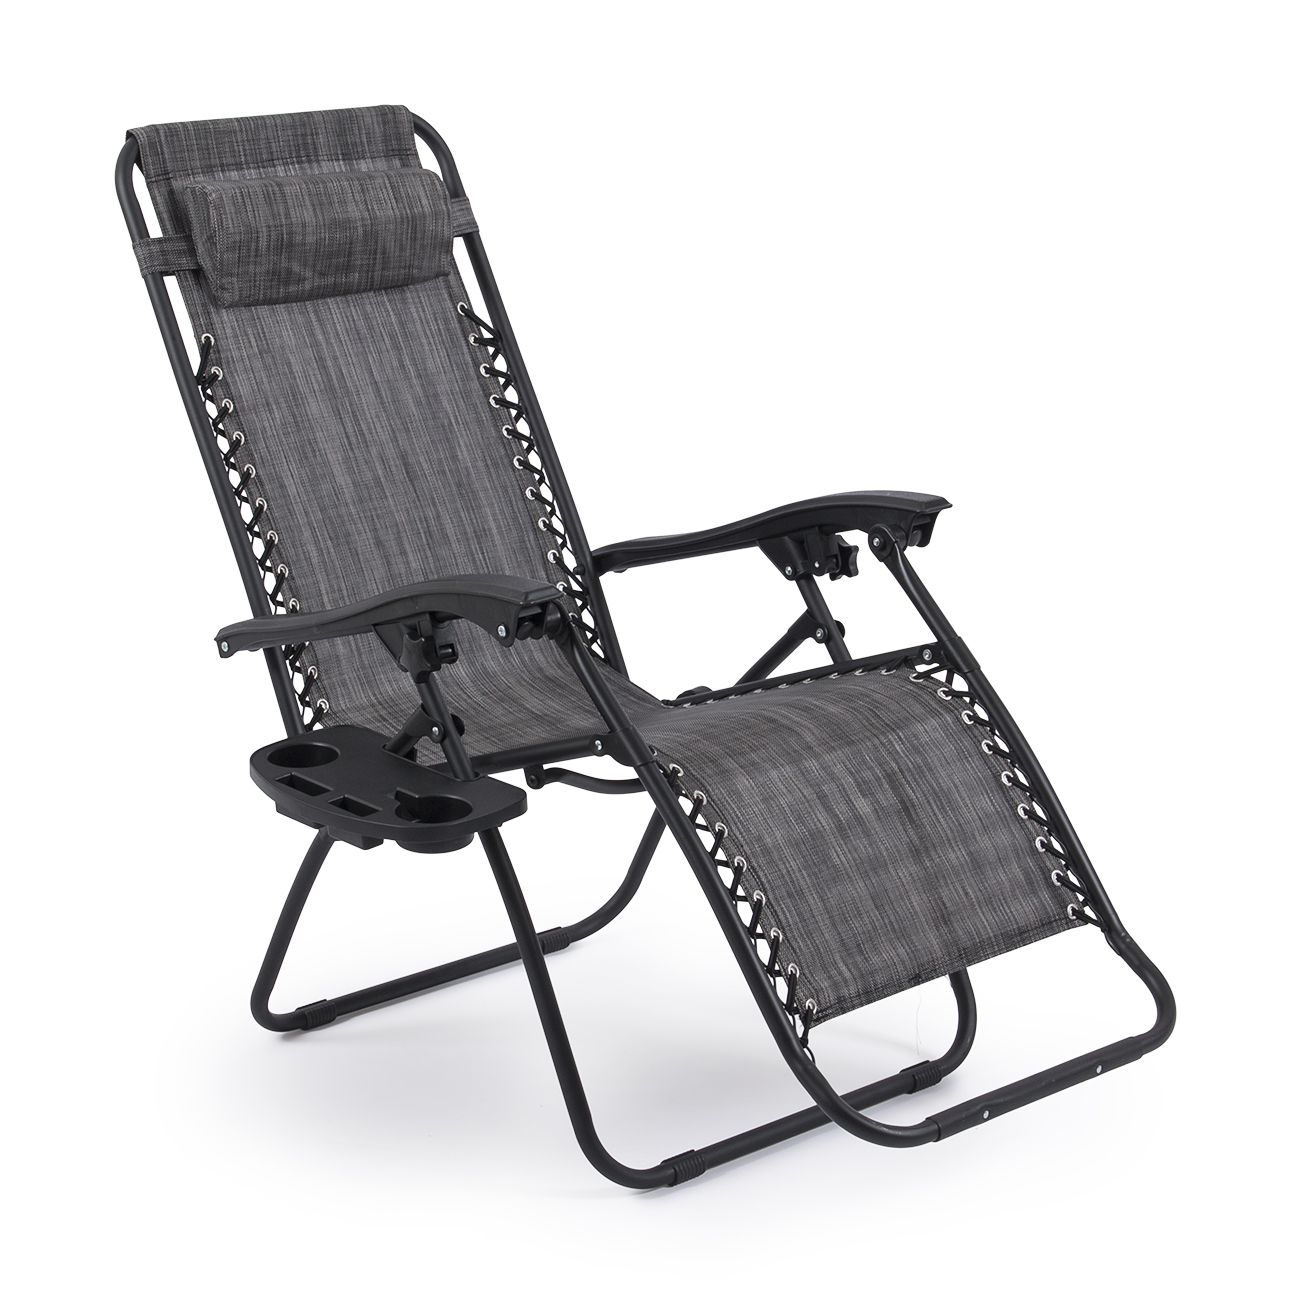 2 Lounge Chair Outdoor Zero Gravity Beach Patio Pool Yard Folding Recliner Gray  sc 1 st  eBay & 2 Lounge Chair Outdoor Zero Gravity Beach Patio Pool Yard Folding ... islam-shia.org